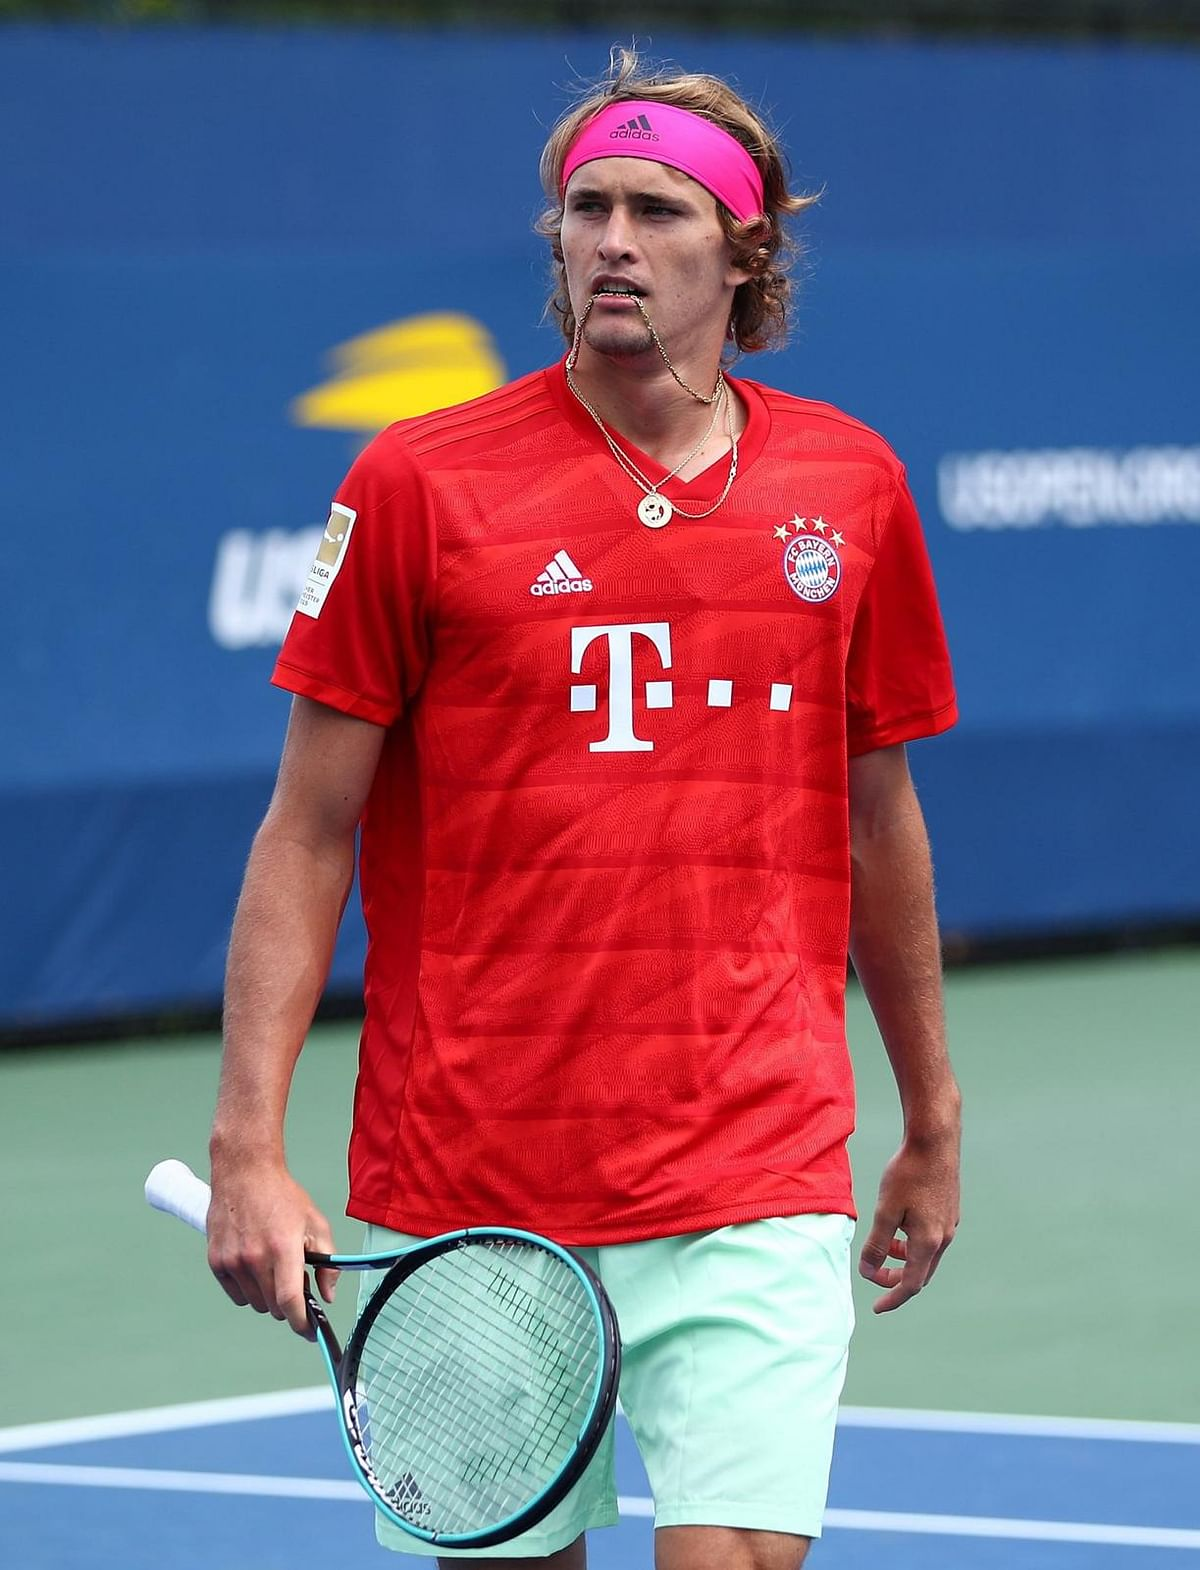 Alexander Zverev will be seeking his his first Grand Slam crown in the final on Monday